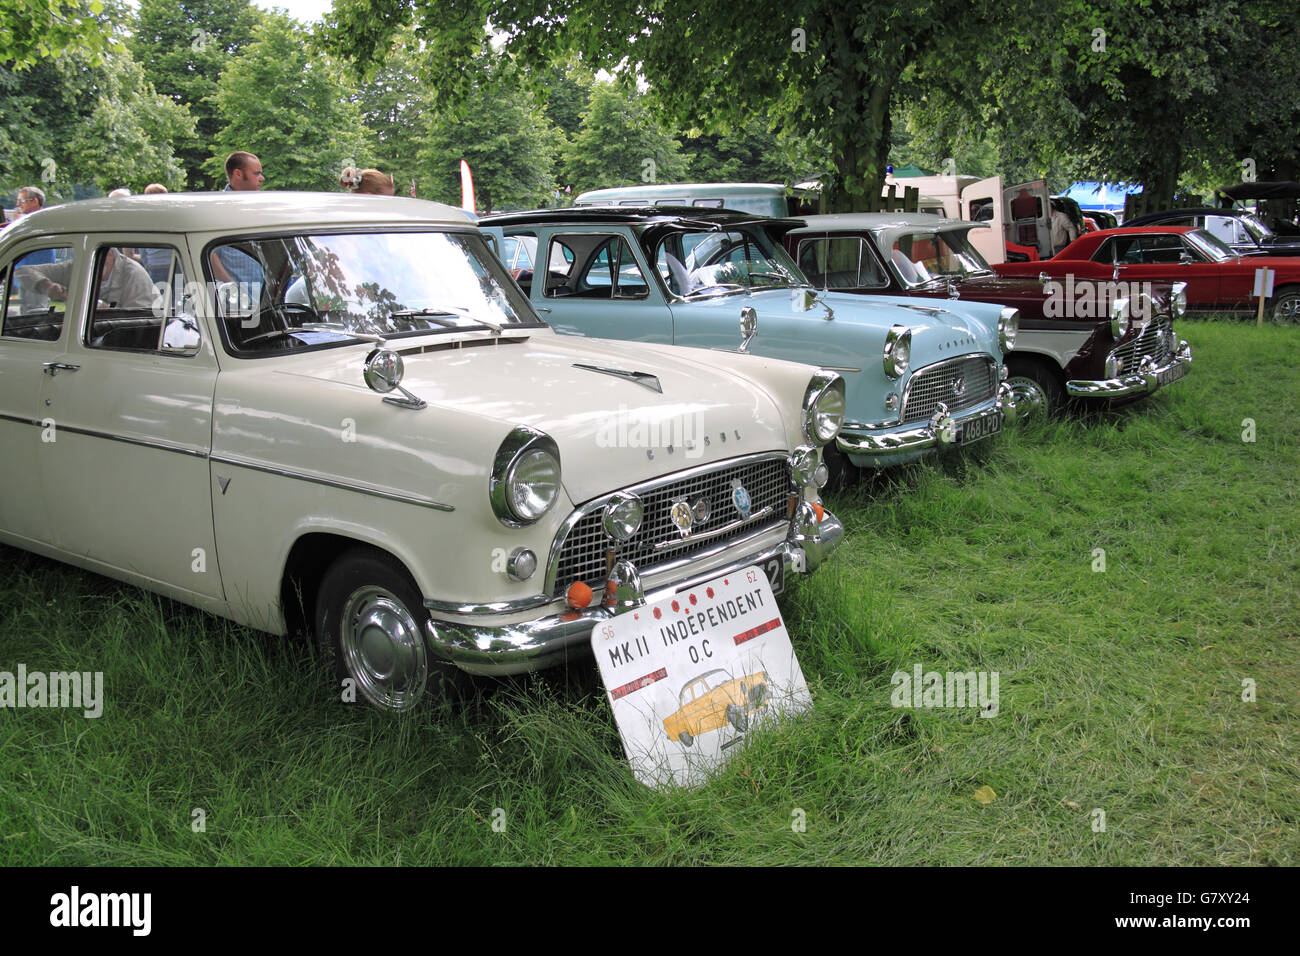 Two Ford Consul Mk IIs (1957 and 1959) and a Ford Zephyr MkII, Hanworth Classic Car Show, 26th June 2016. Bushy - Stock Image